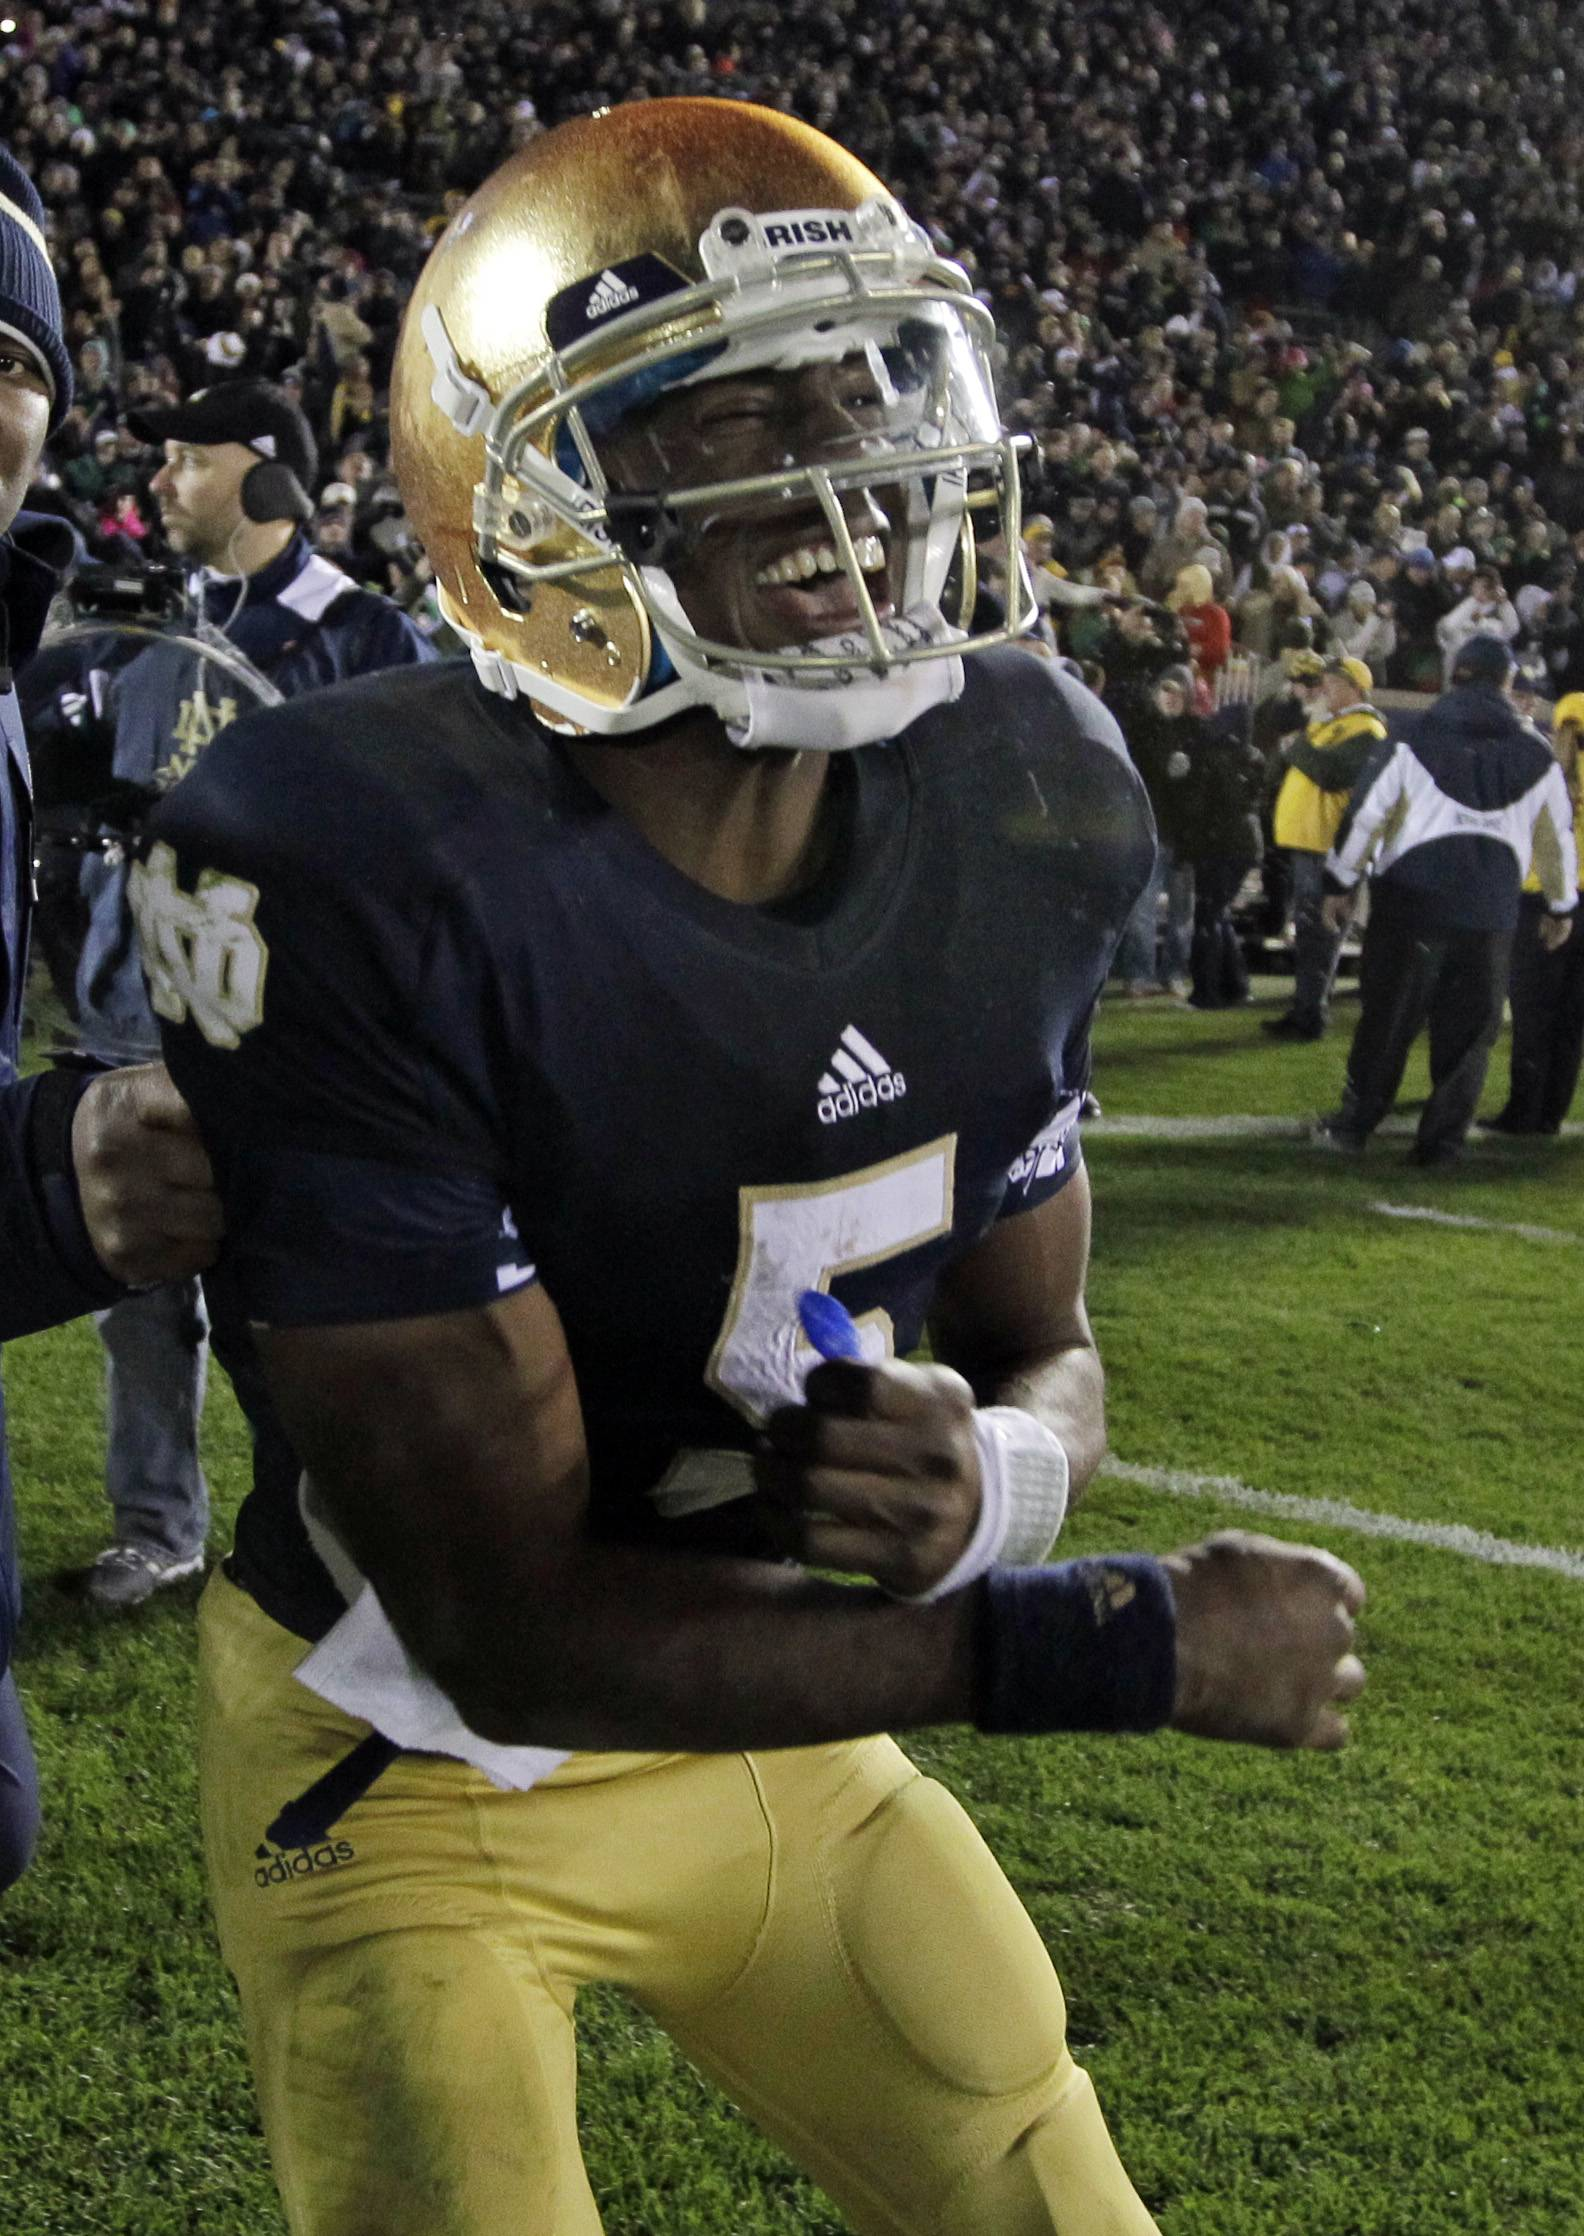 Golson leads No. 4 Irish to overtime win over Pitt